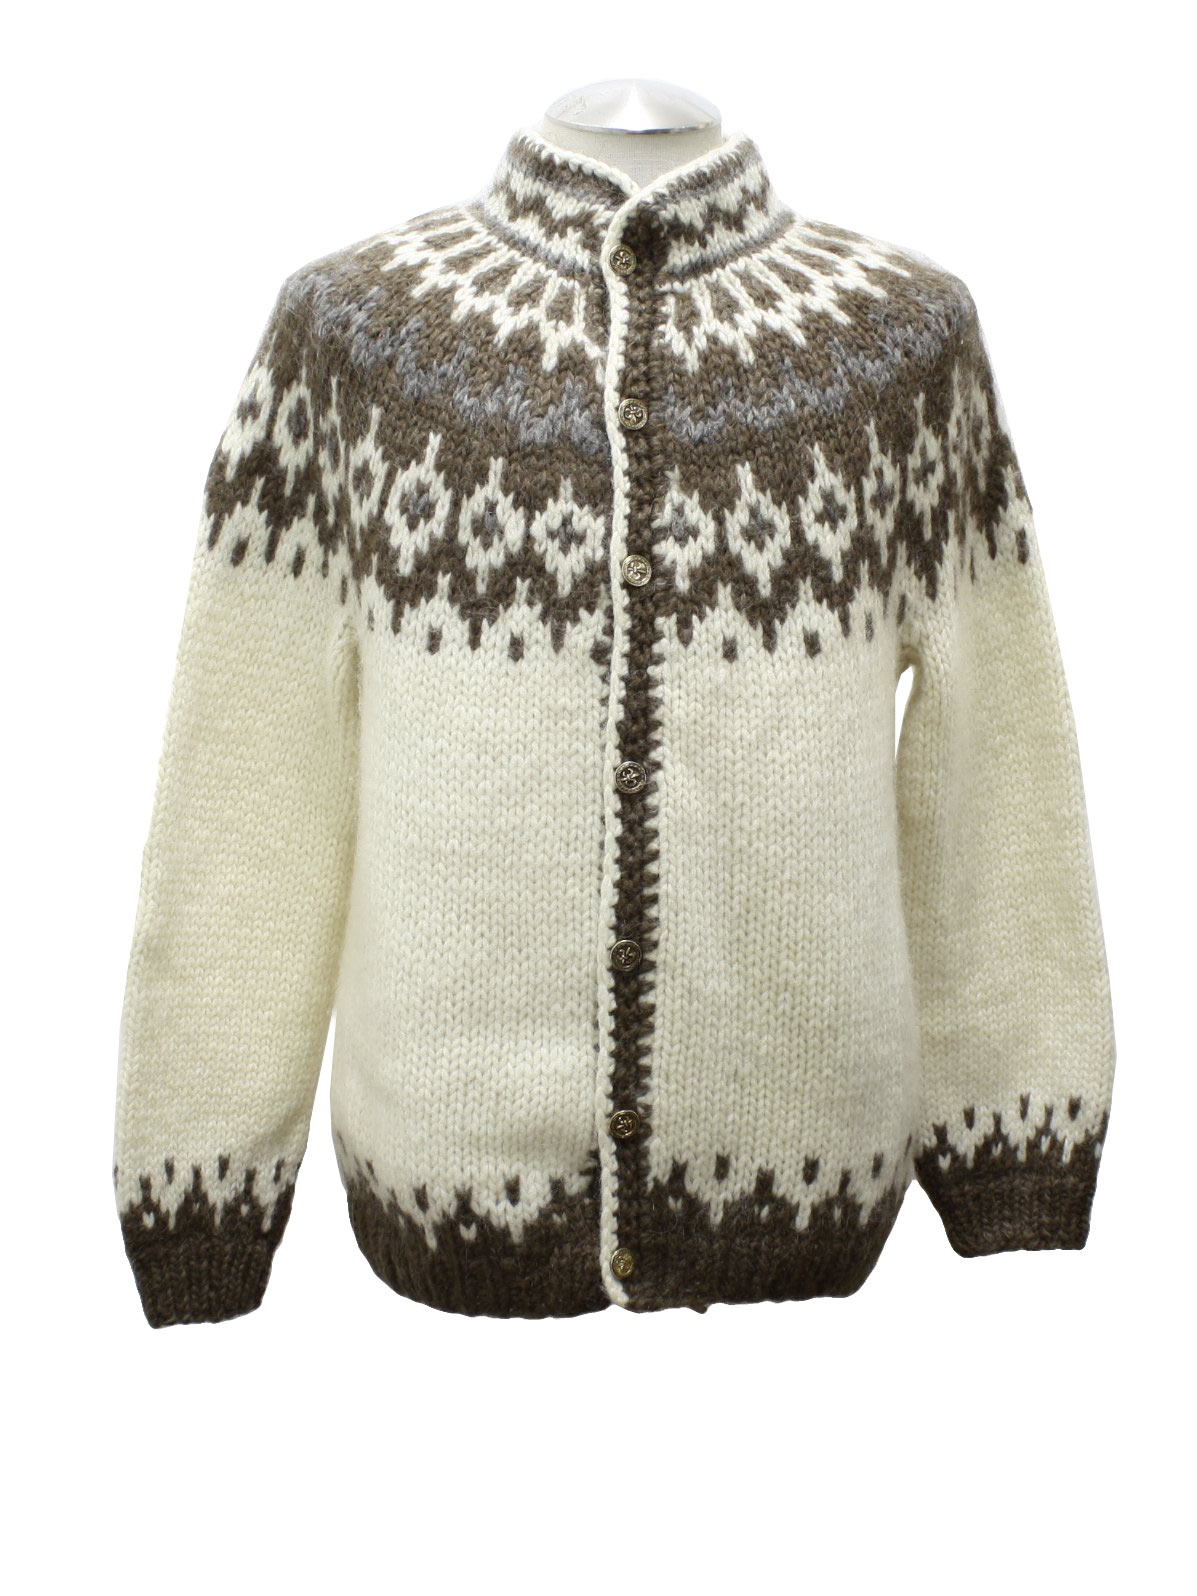 Icelandic Sweaters Patterns Sweater Vest